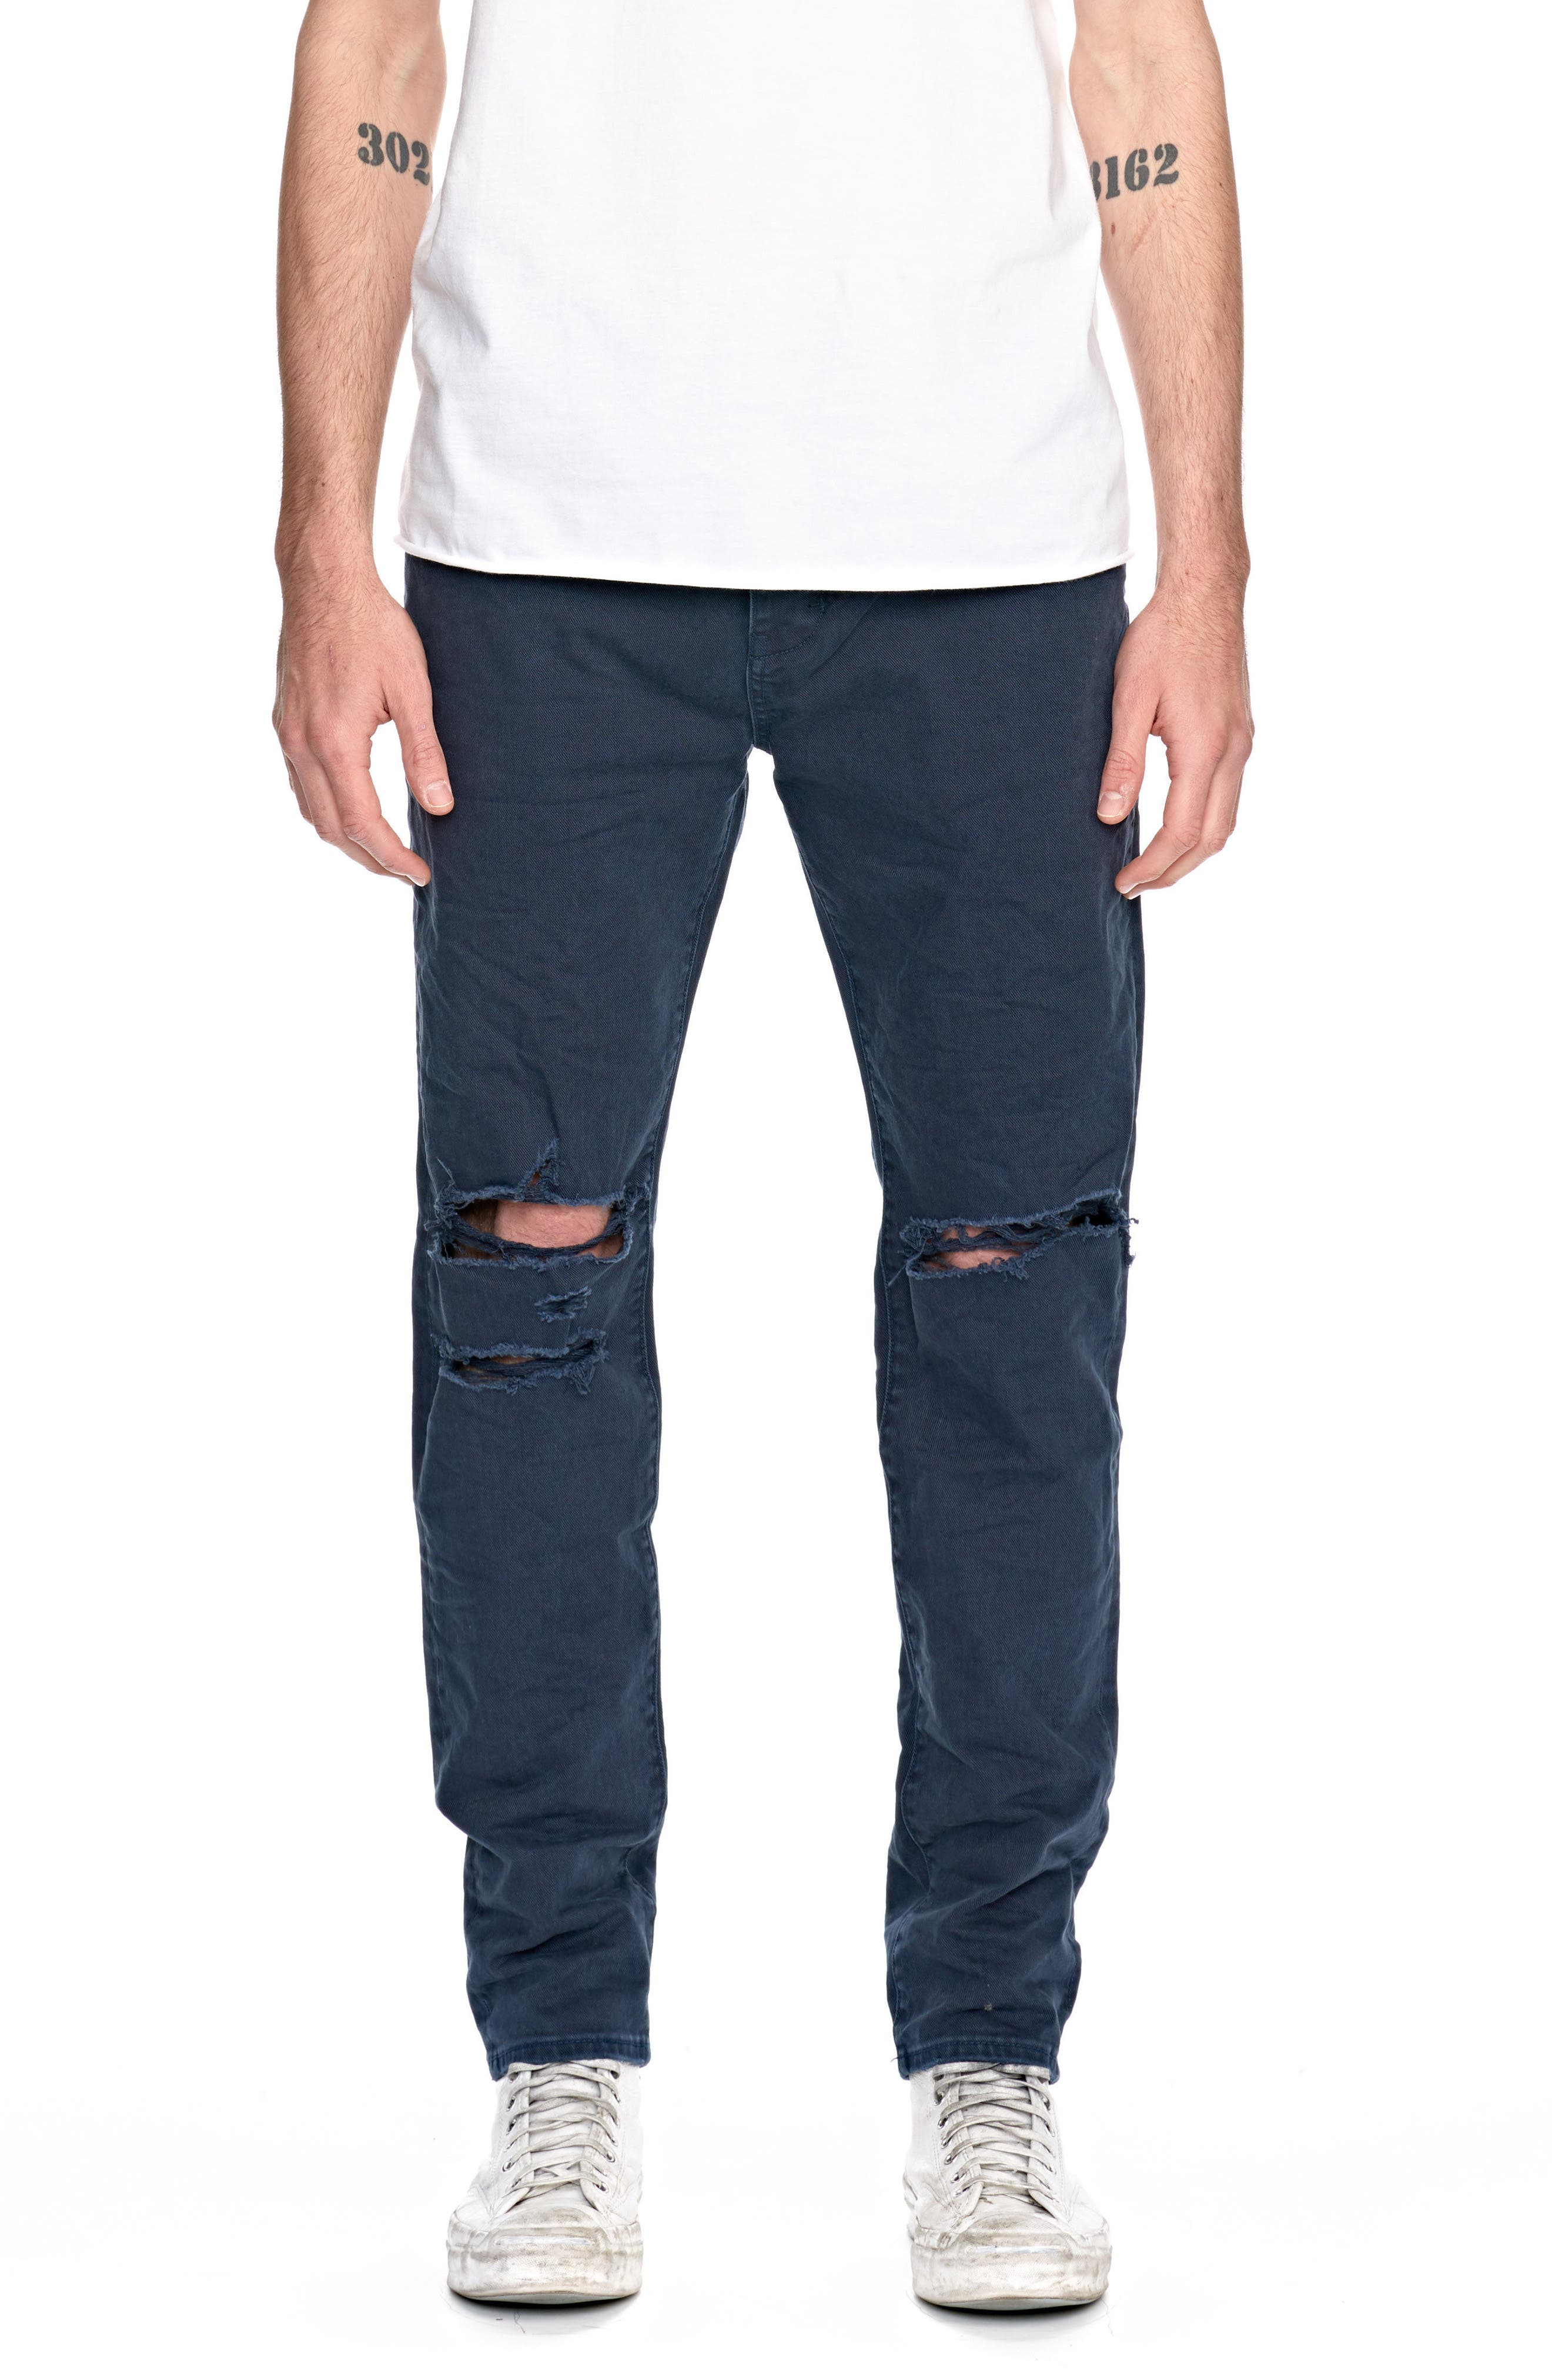 Ray Slouchy Slim Fit Jeans,                             Main thumbnail 1, color,                             Busted Navy